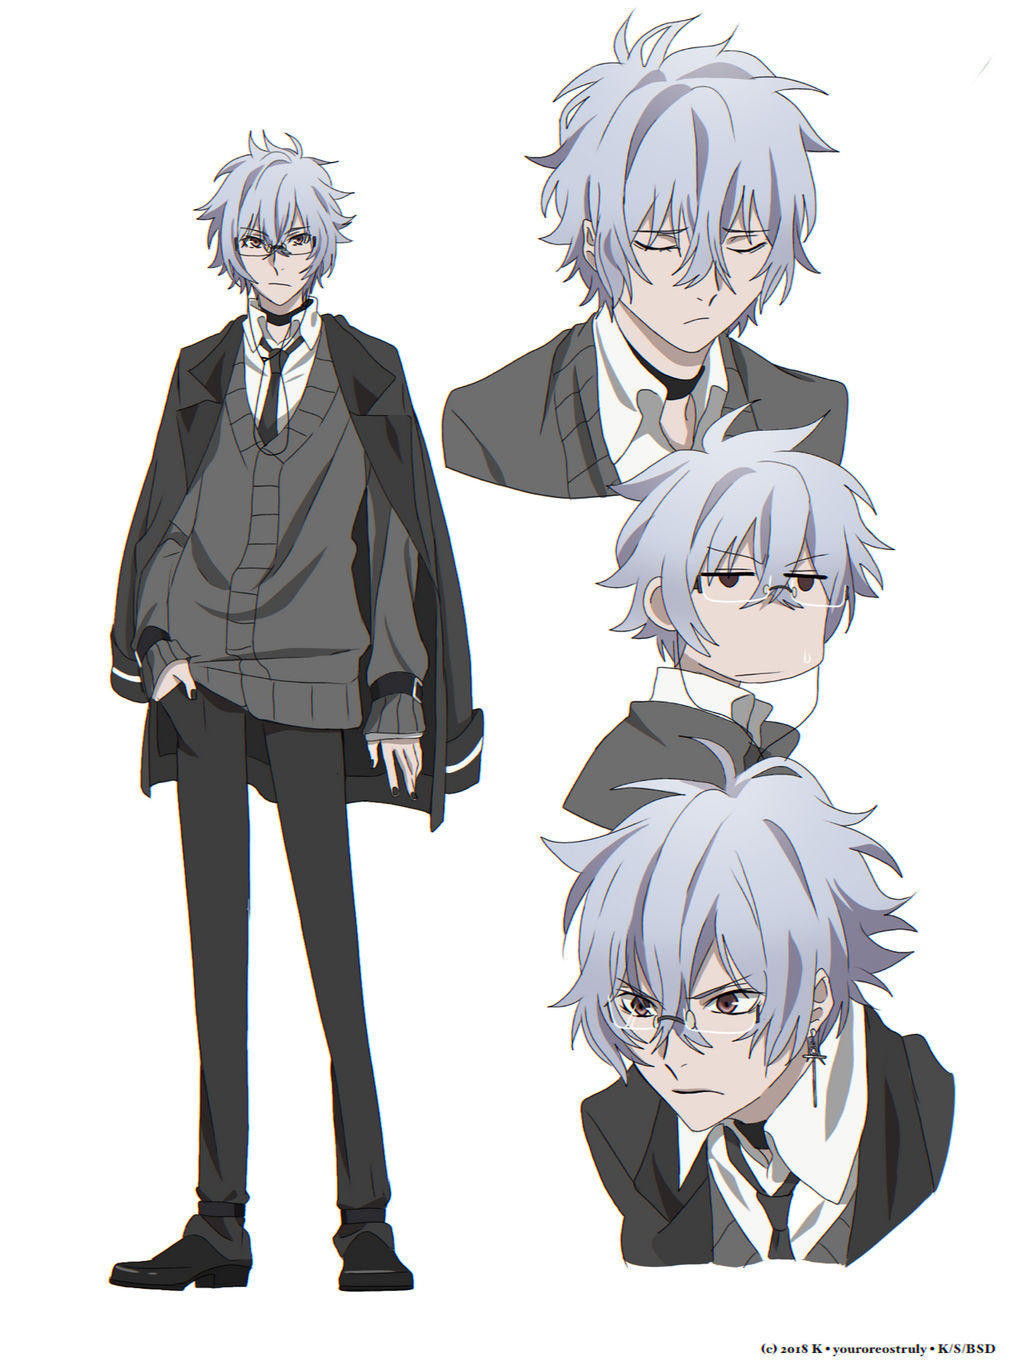 Bungo Stray Dogs OC - Gin. by orehyeonggie on DeviantArt